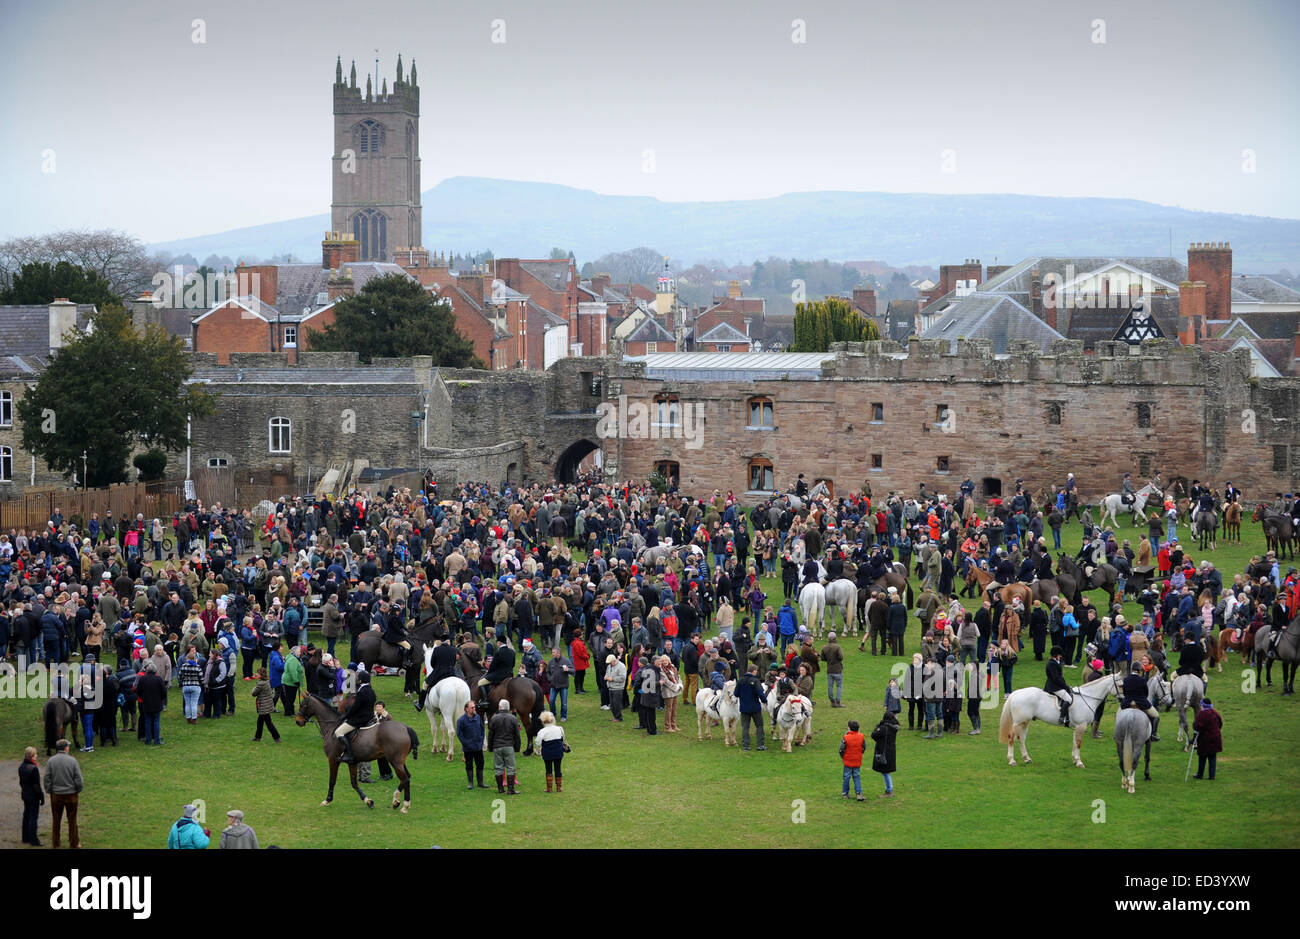 Riders and spectators gather for The Ludlow Hunt Boxing Day meet at Ludlow Castle - Stock Image